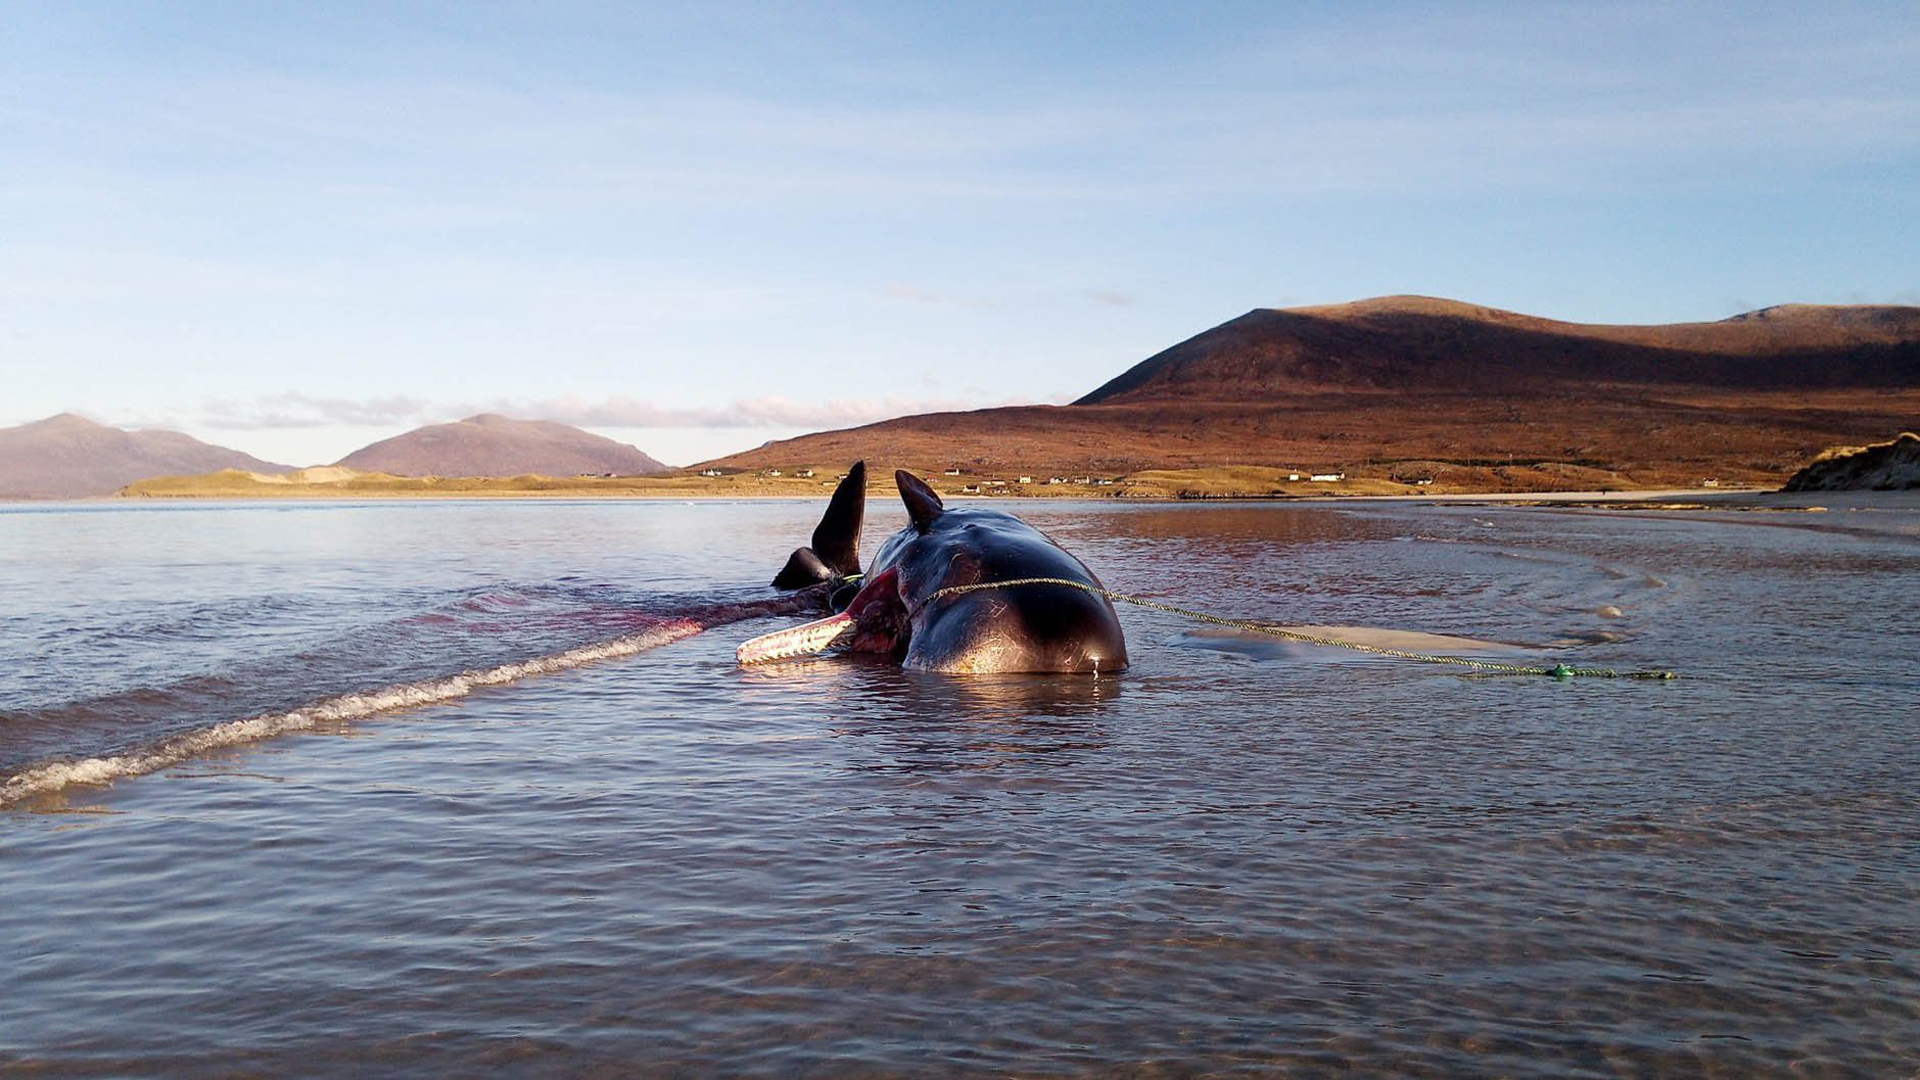 The young male sperm whale became stranded on the Isle of Harris in Scotland's Outer Hebrides. (Credit: Dan Parry)